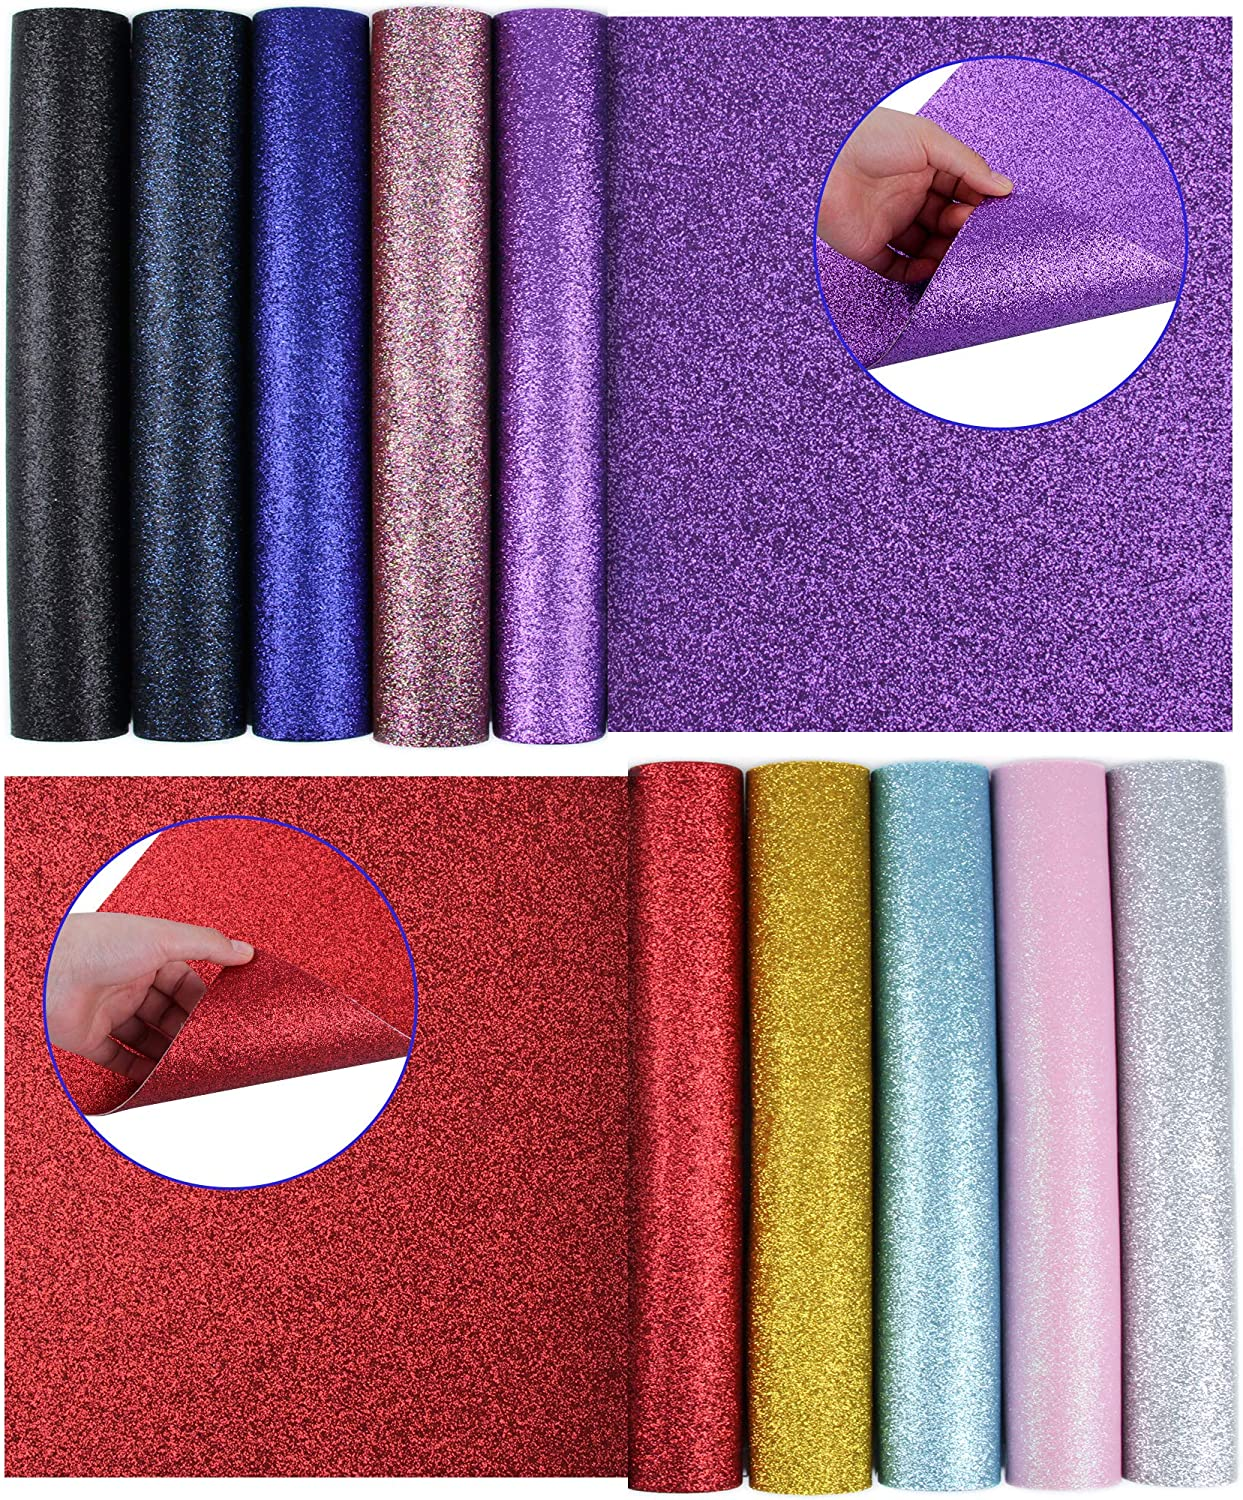 Zobidobi Upgrade 10PCS Double-Sided Faux Leather Sheets for DIY Craft, Glitter Leather Fabric for Earring Making, Hair Bows, Pouches, Sewing Material and Festival Decor (12.6''x8.6'')